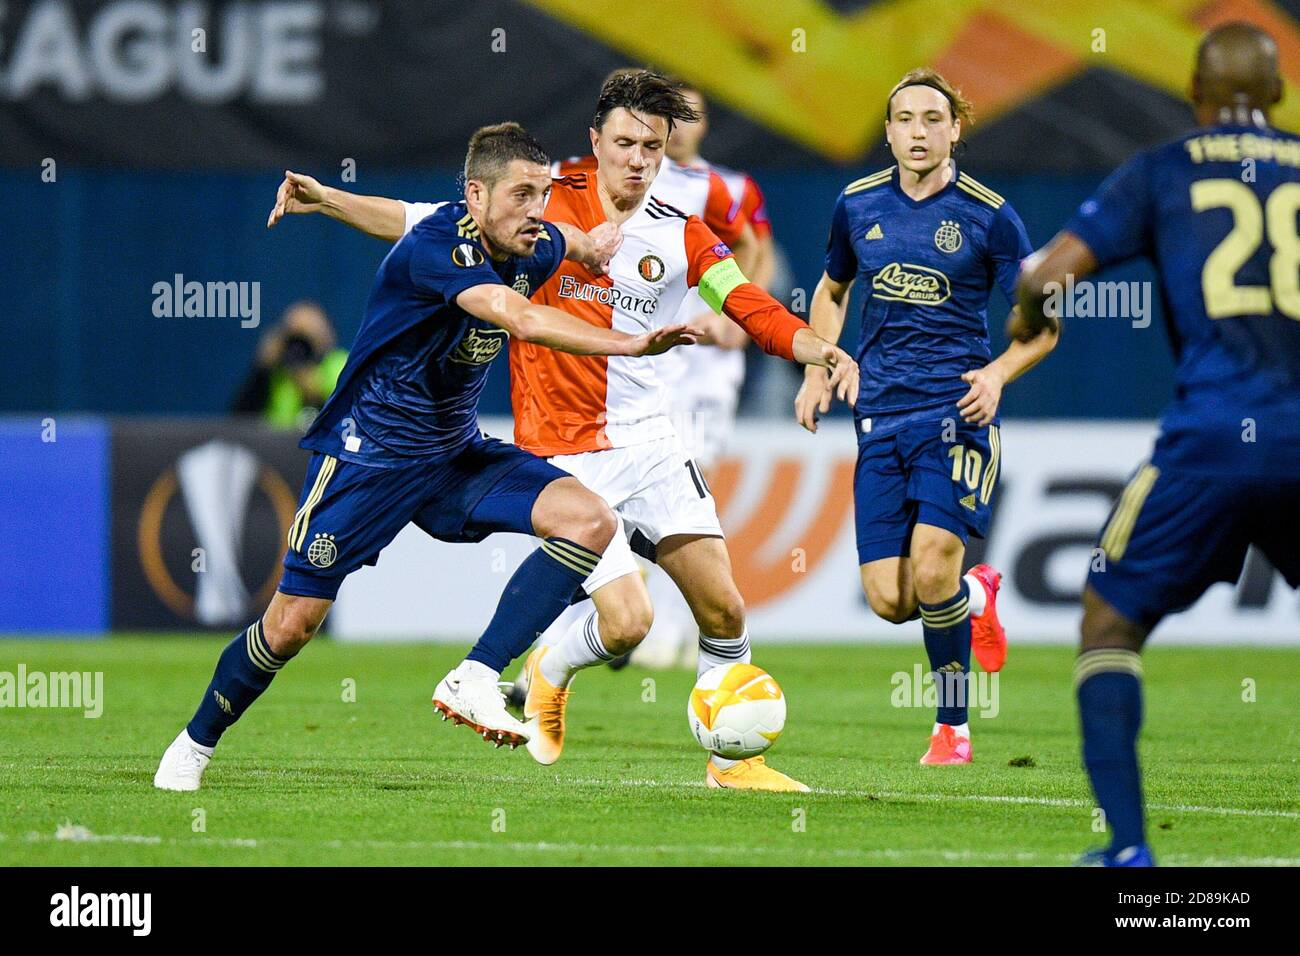 Arijan Ademi Of Dinamo Zagreb Steven Berghuis Of Feyenoord During The Uefa Europa League Group Stage Group K Football Match Between Dinamo Zagreb C Stock Photo Alamy